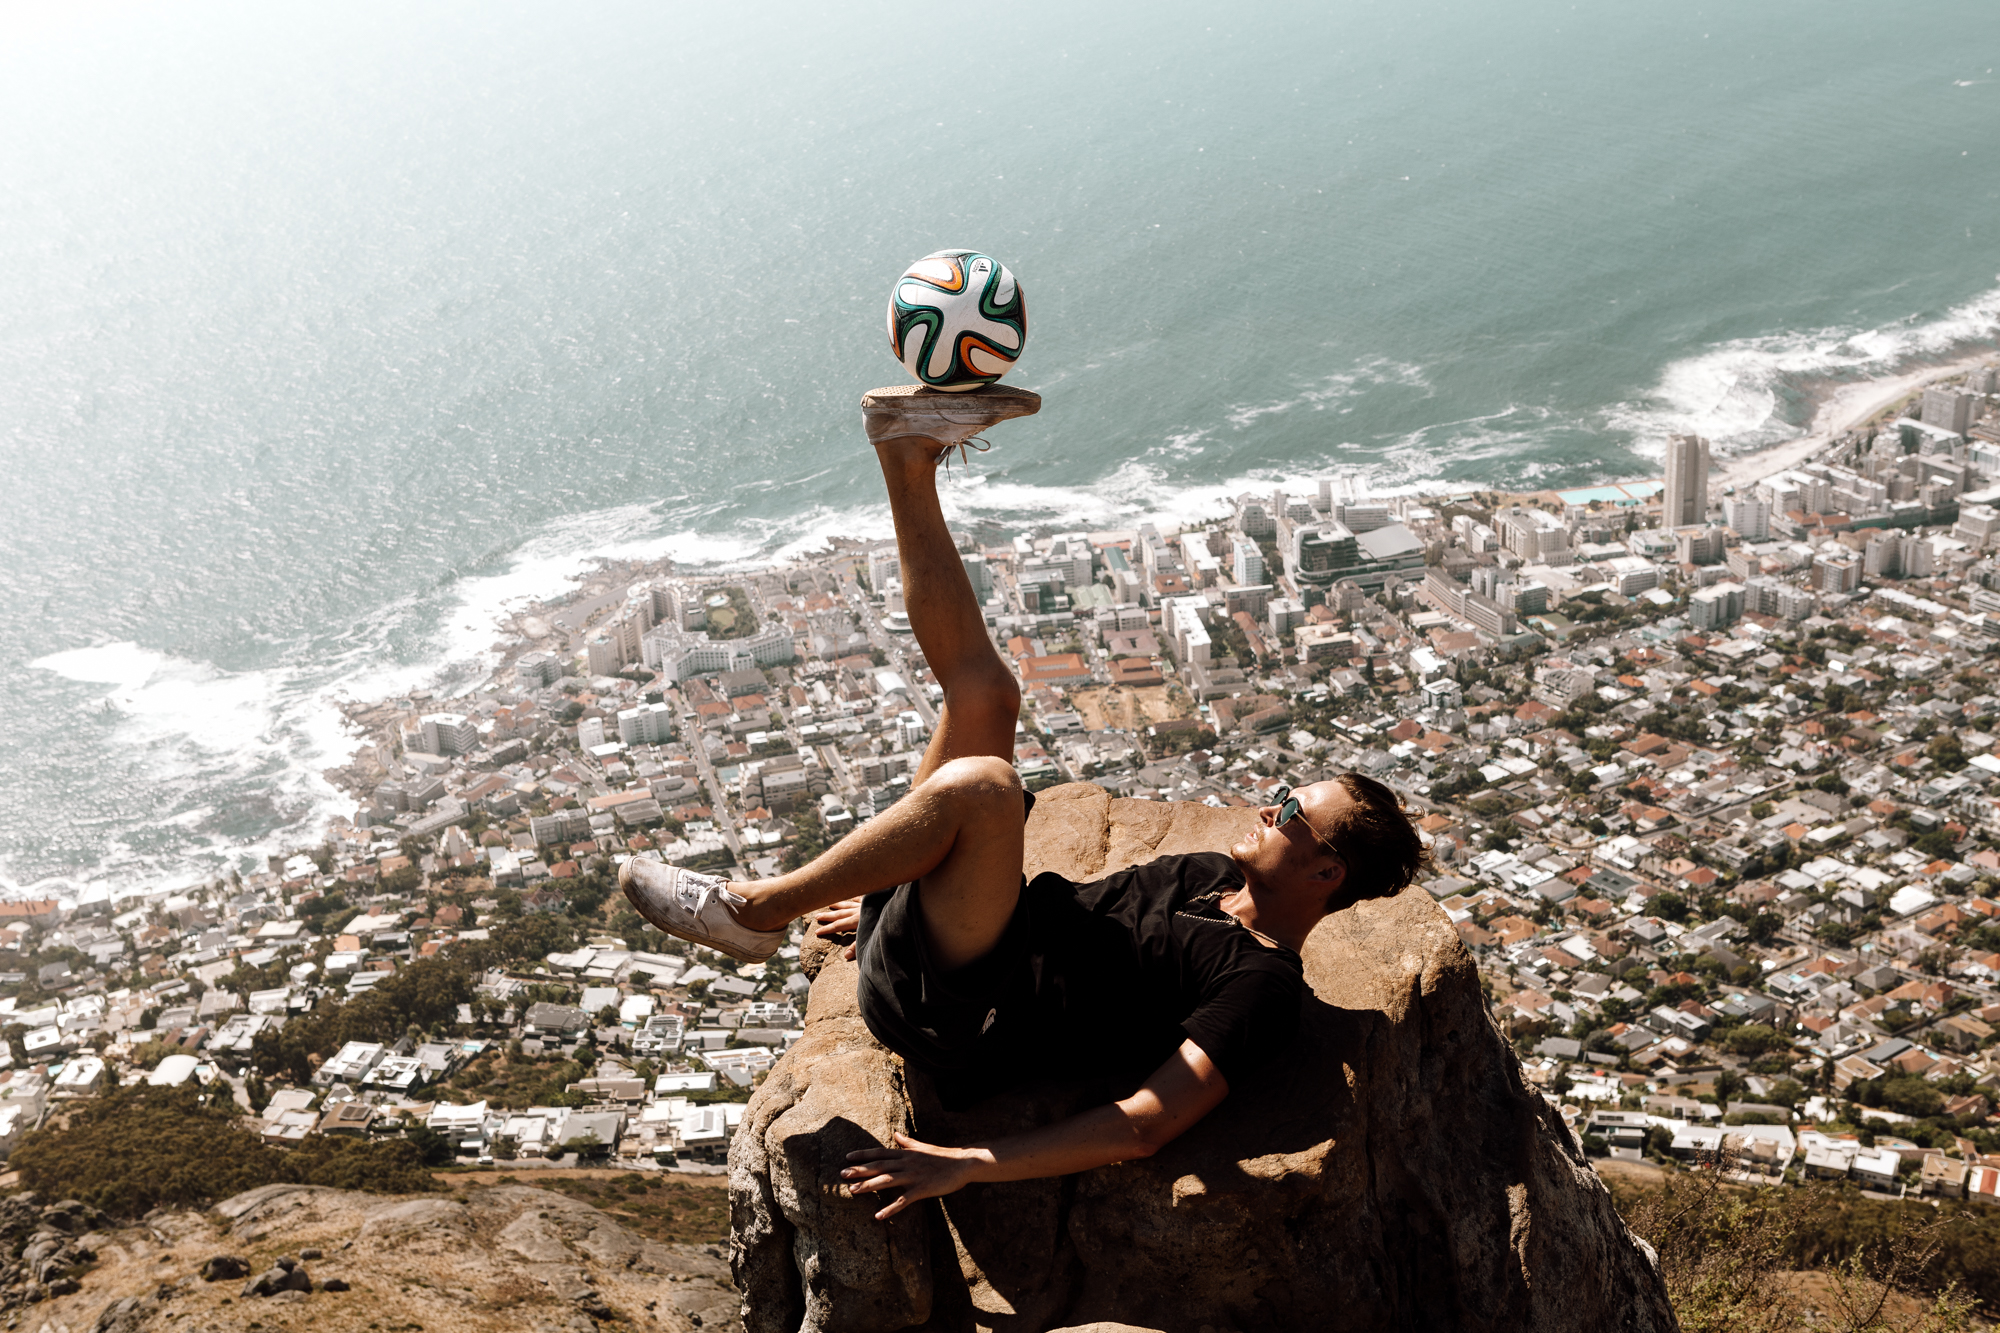 Fussball Freestyle Trick | CAPE TOWN